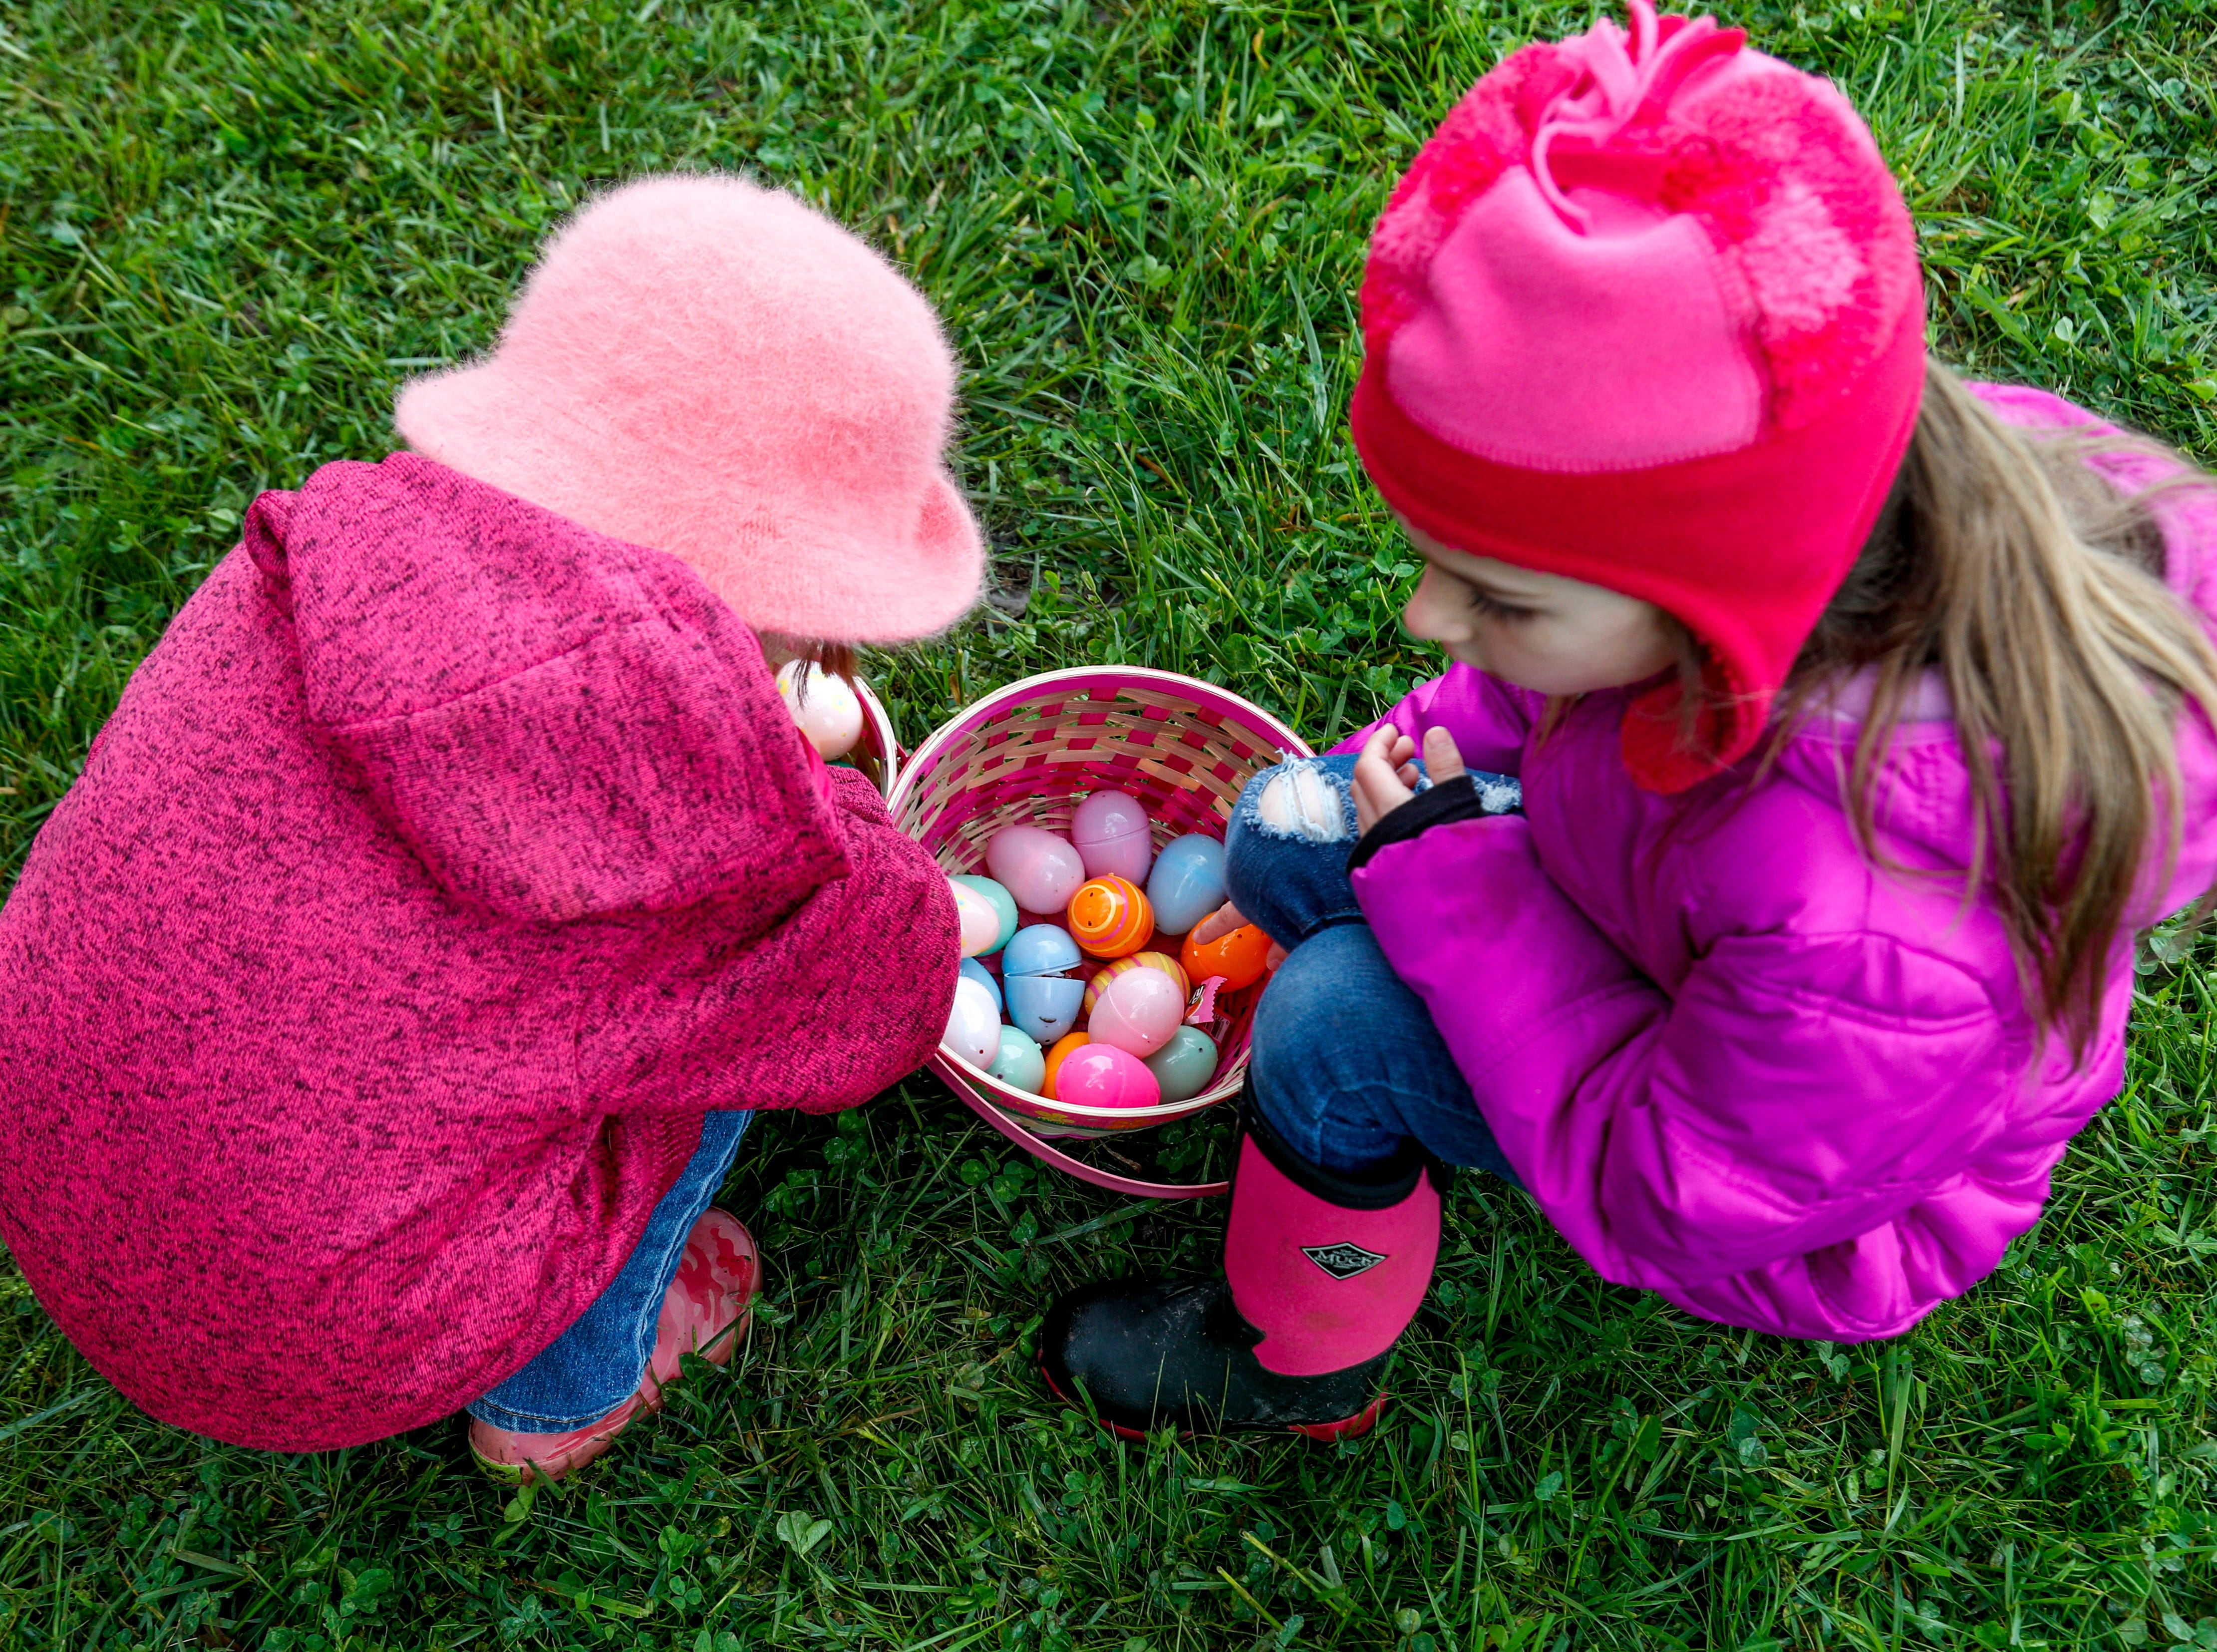 Sisters compare their loot of eggs from the hunt at the annual Easter egg hunts at Historic Collinsville in Clarksville, Tenn., on Saturday, April 20, 2019.